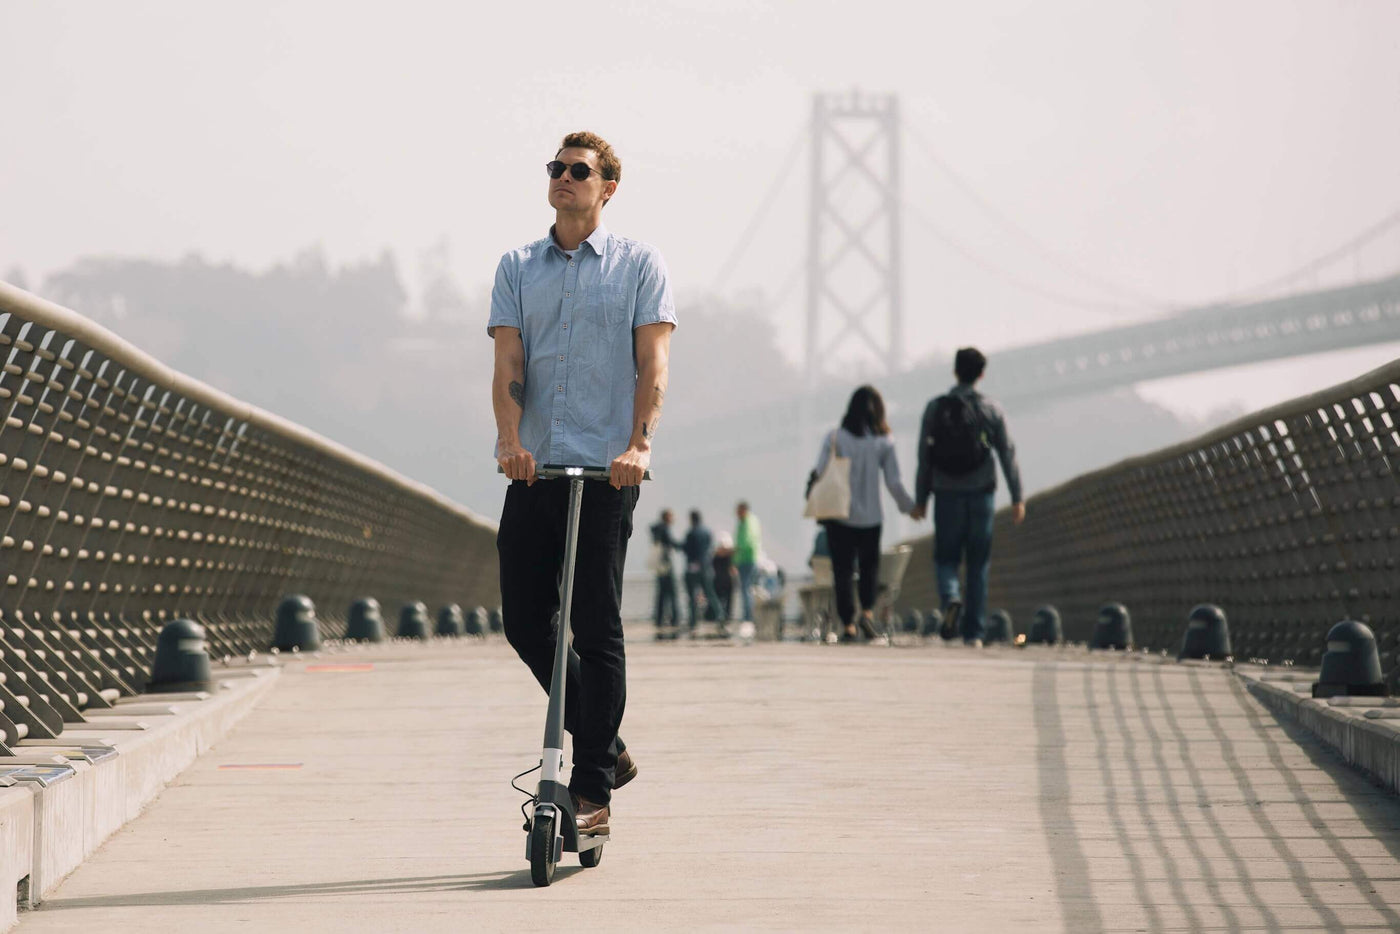 Love or Hate: 9 Studies Show What People Actually Think About Electric Scooters